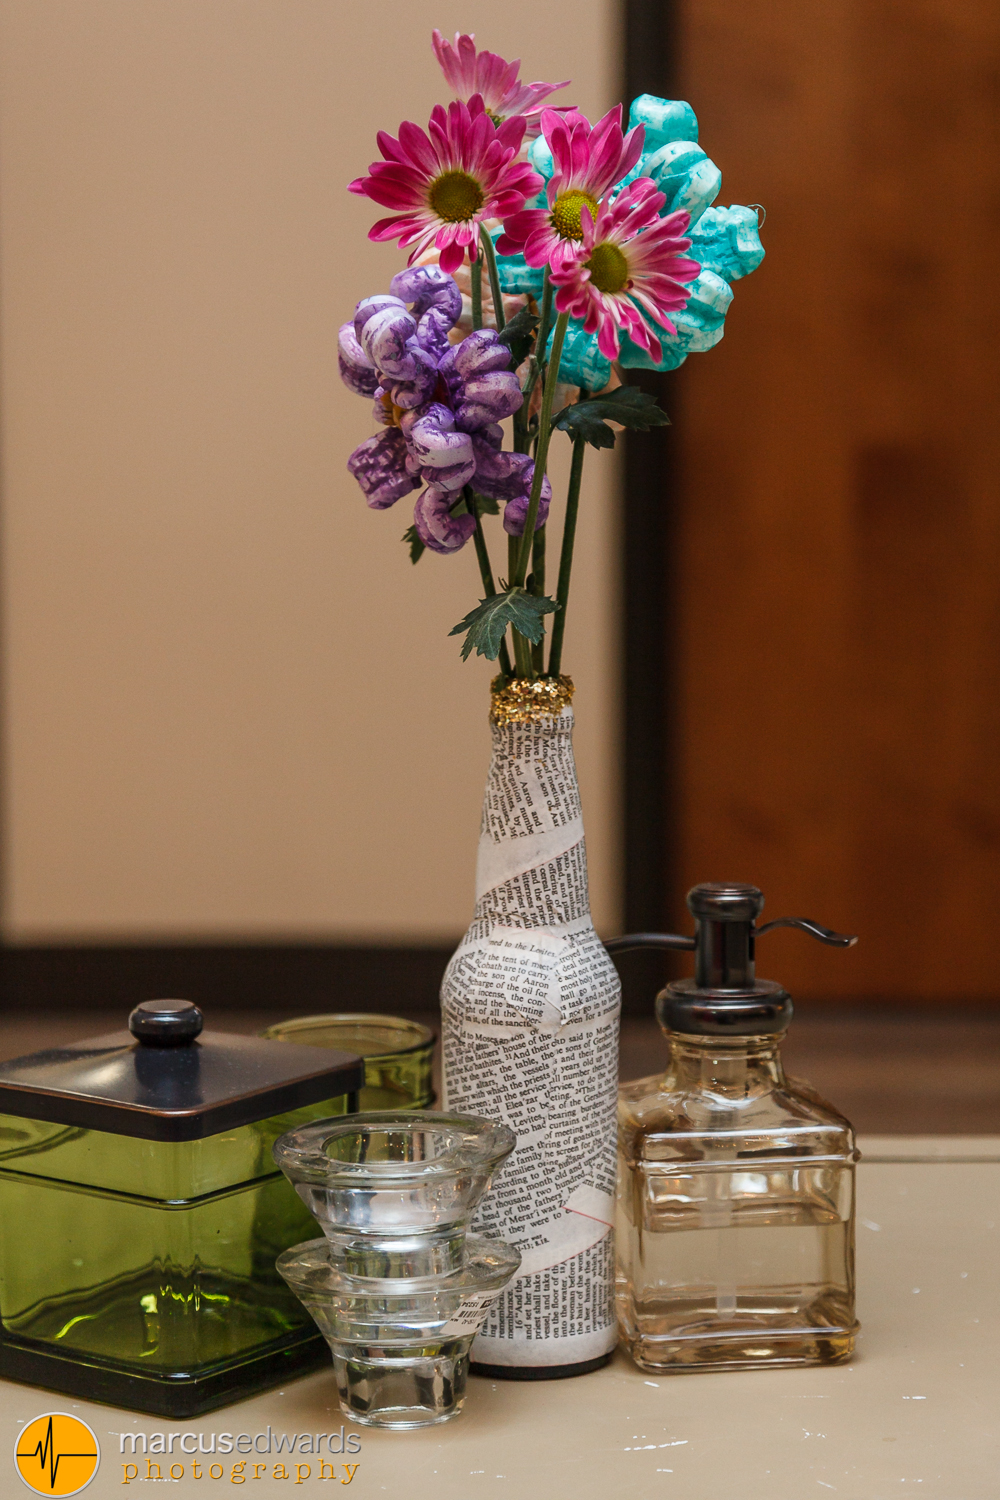 Now I want you to pay attention to this one. This is just an example of how creative Janie is. The bottle is wrapped with pages from the Bible. And the purple and green flowers are made out shipping / packing peanuts.